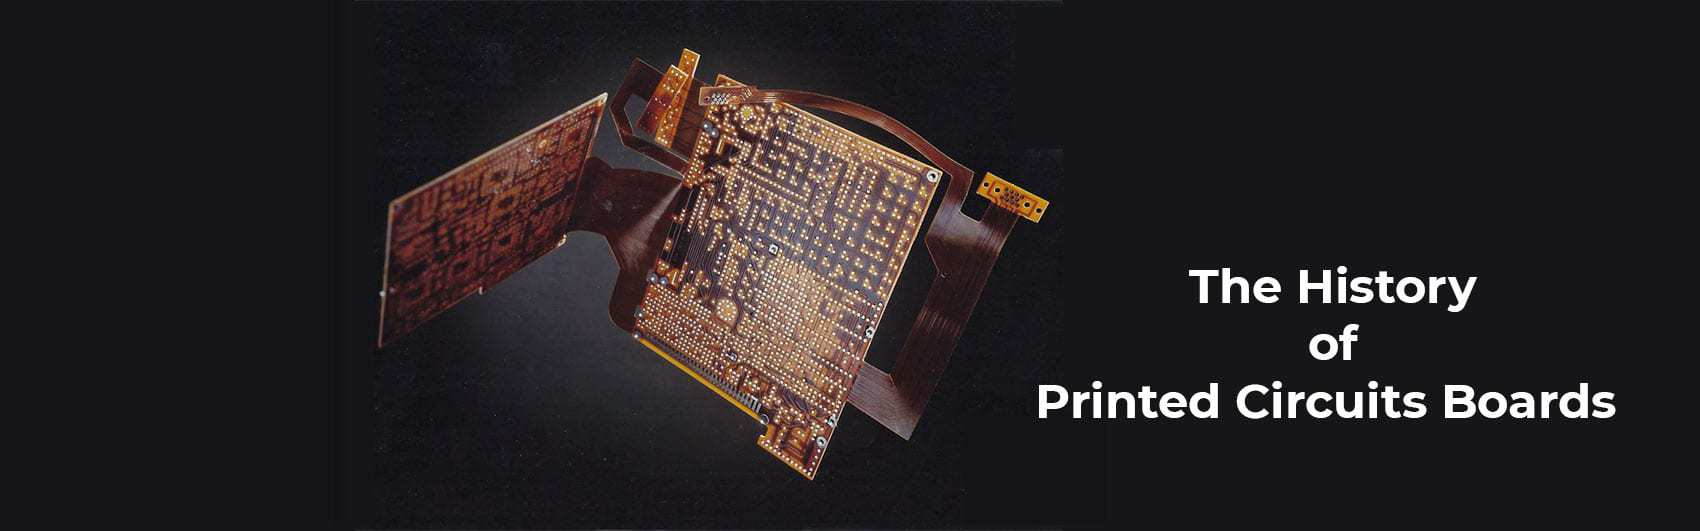 History of PCB's Blog-Banner